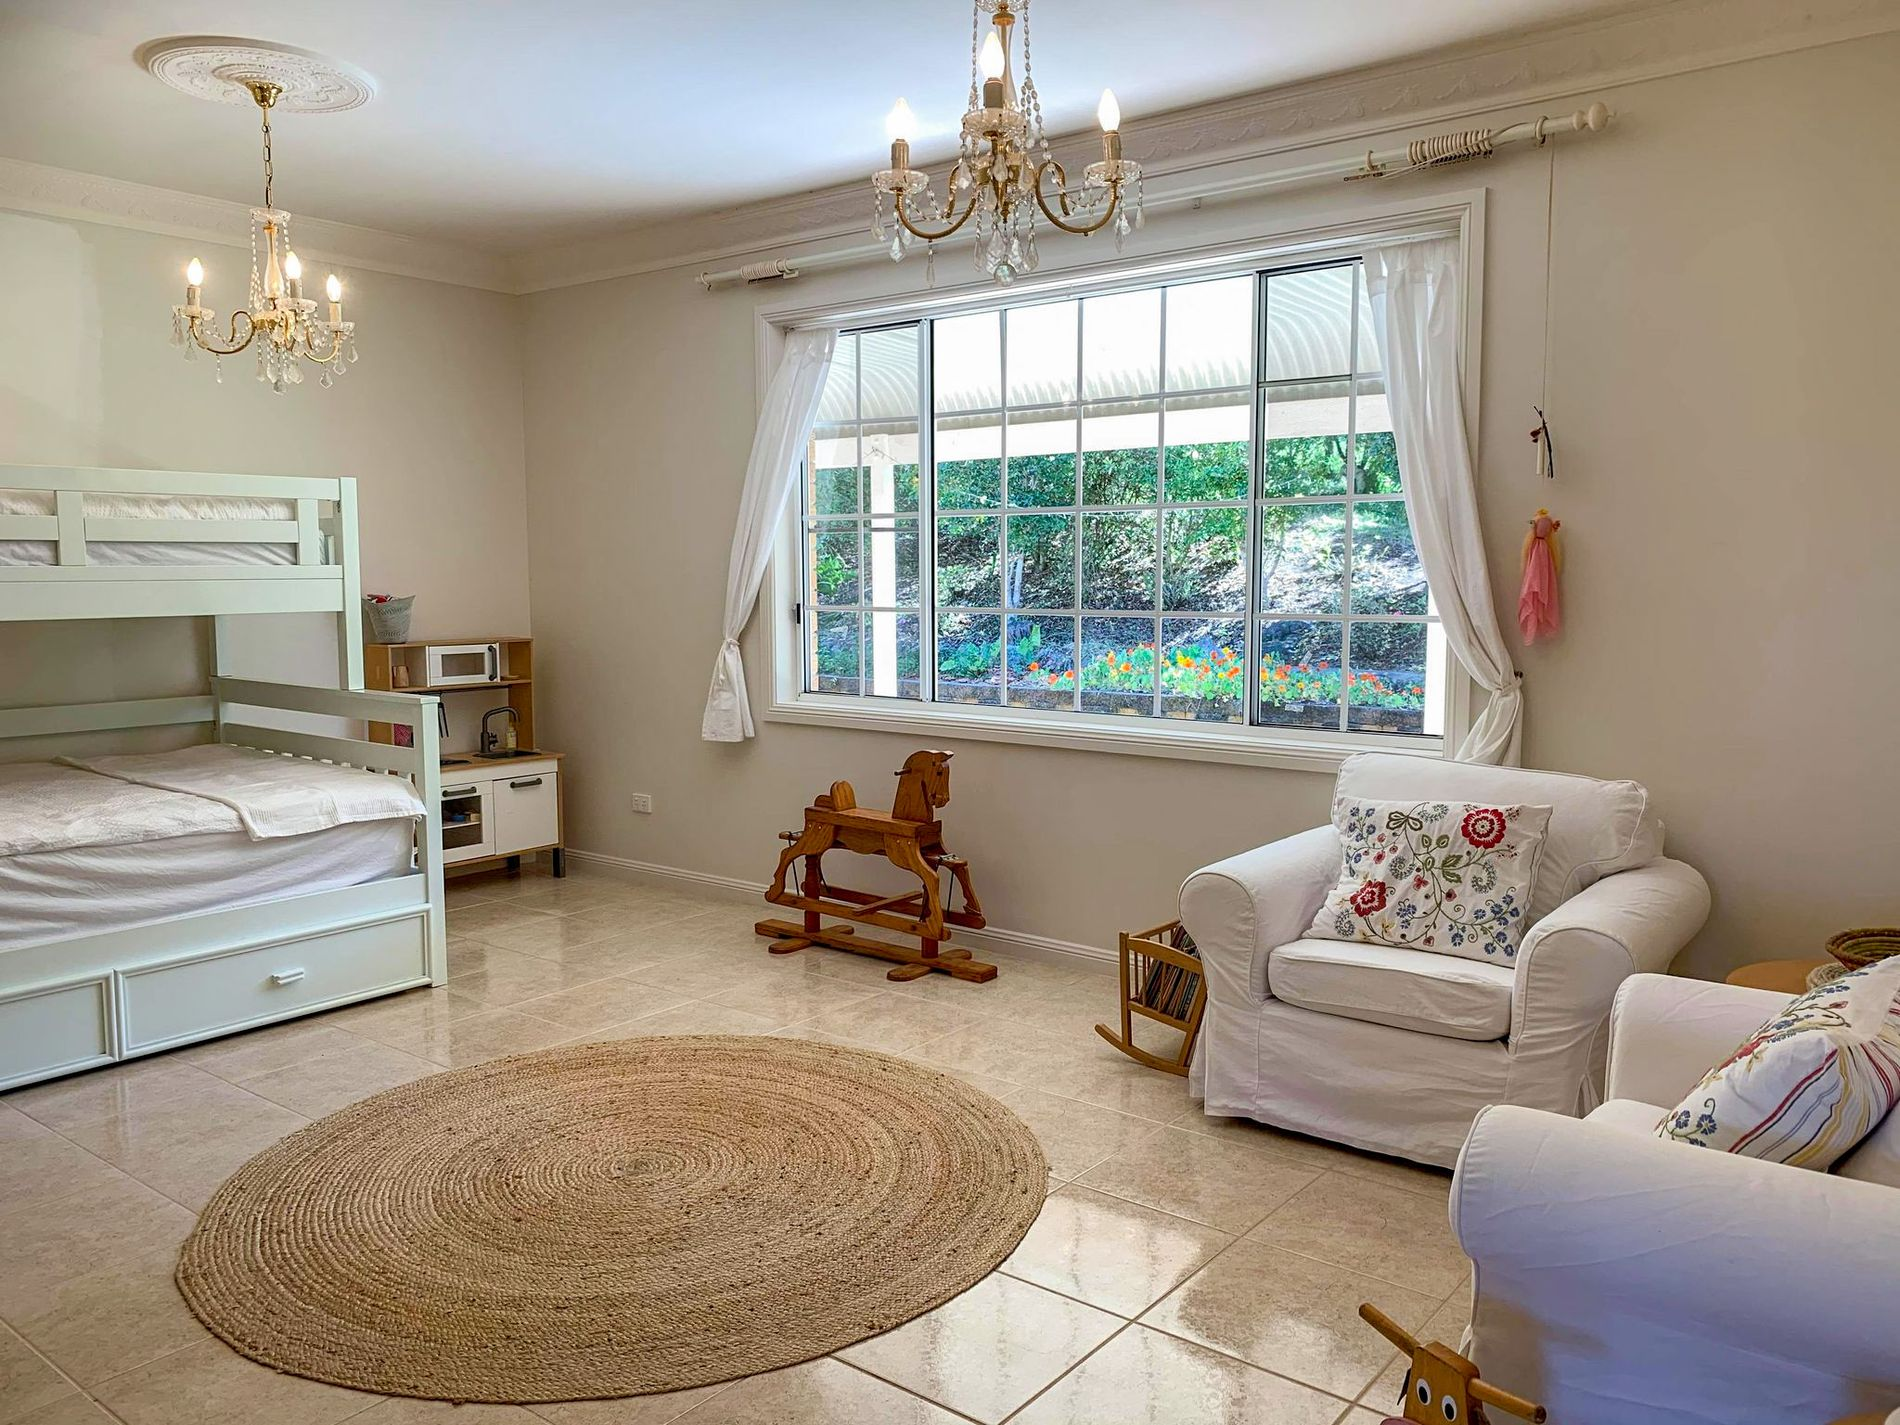 53 Squires Road, Wootton